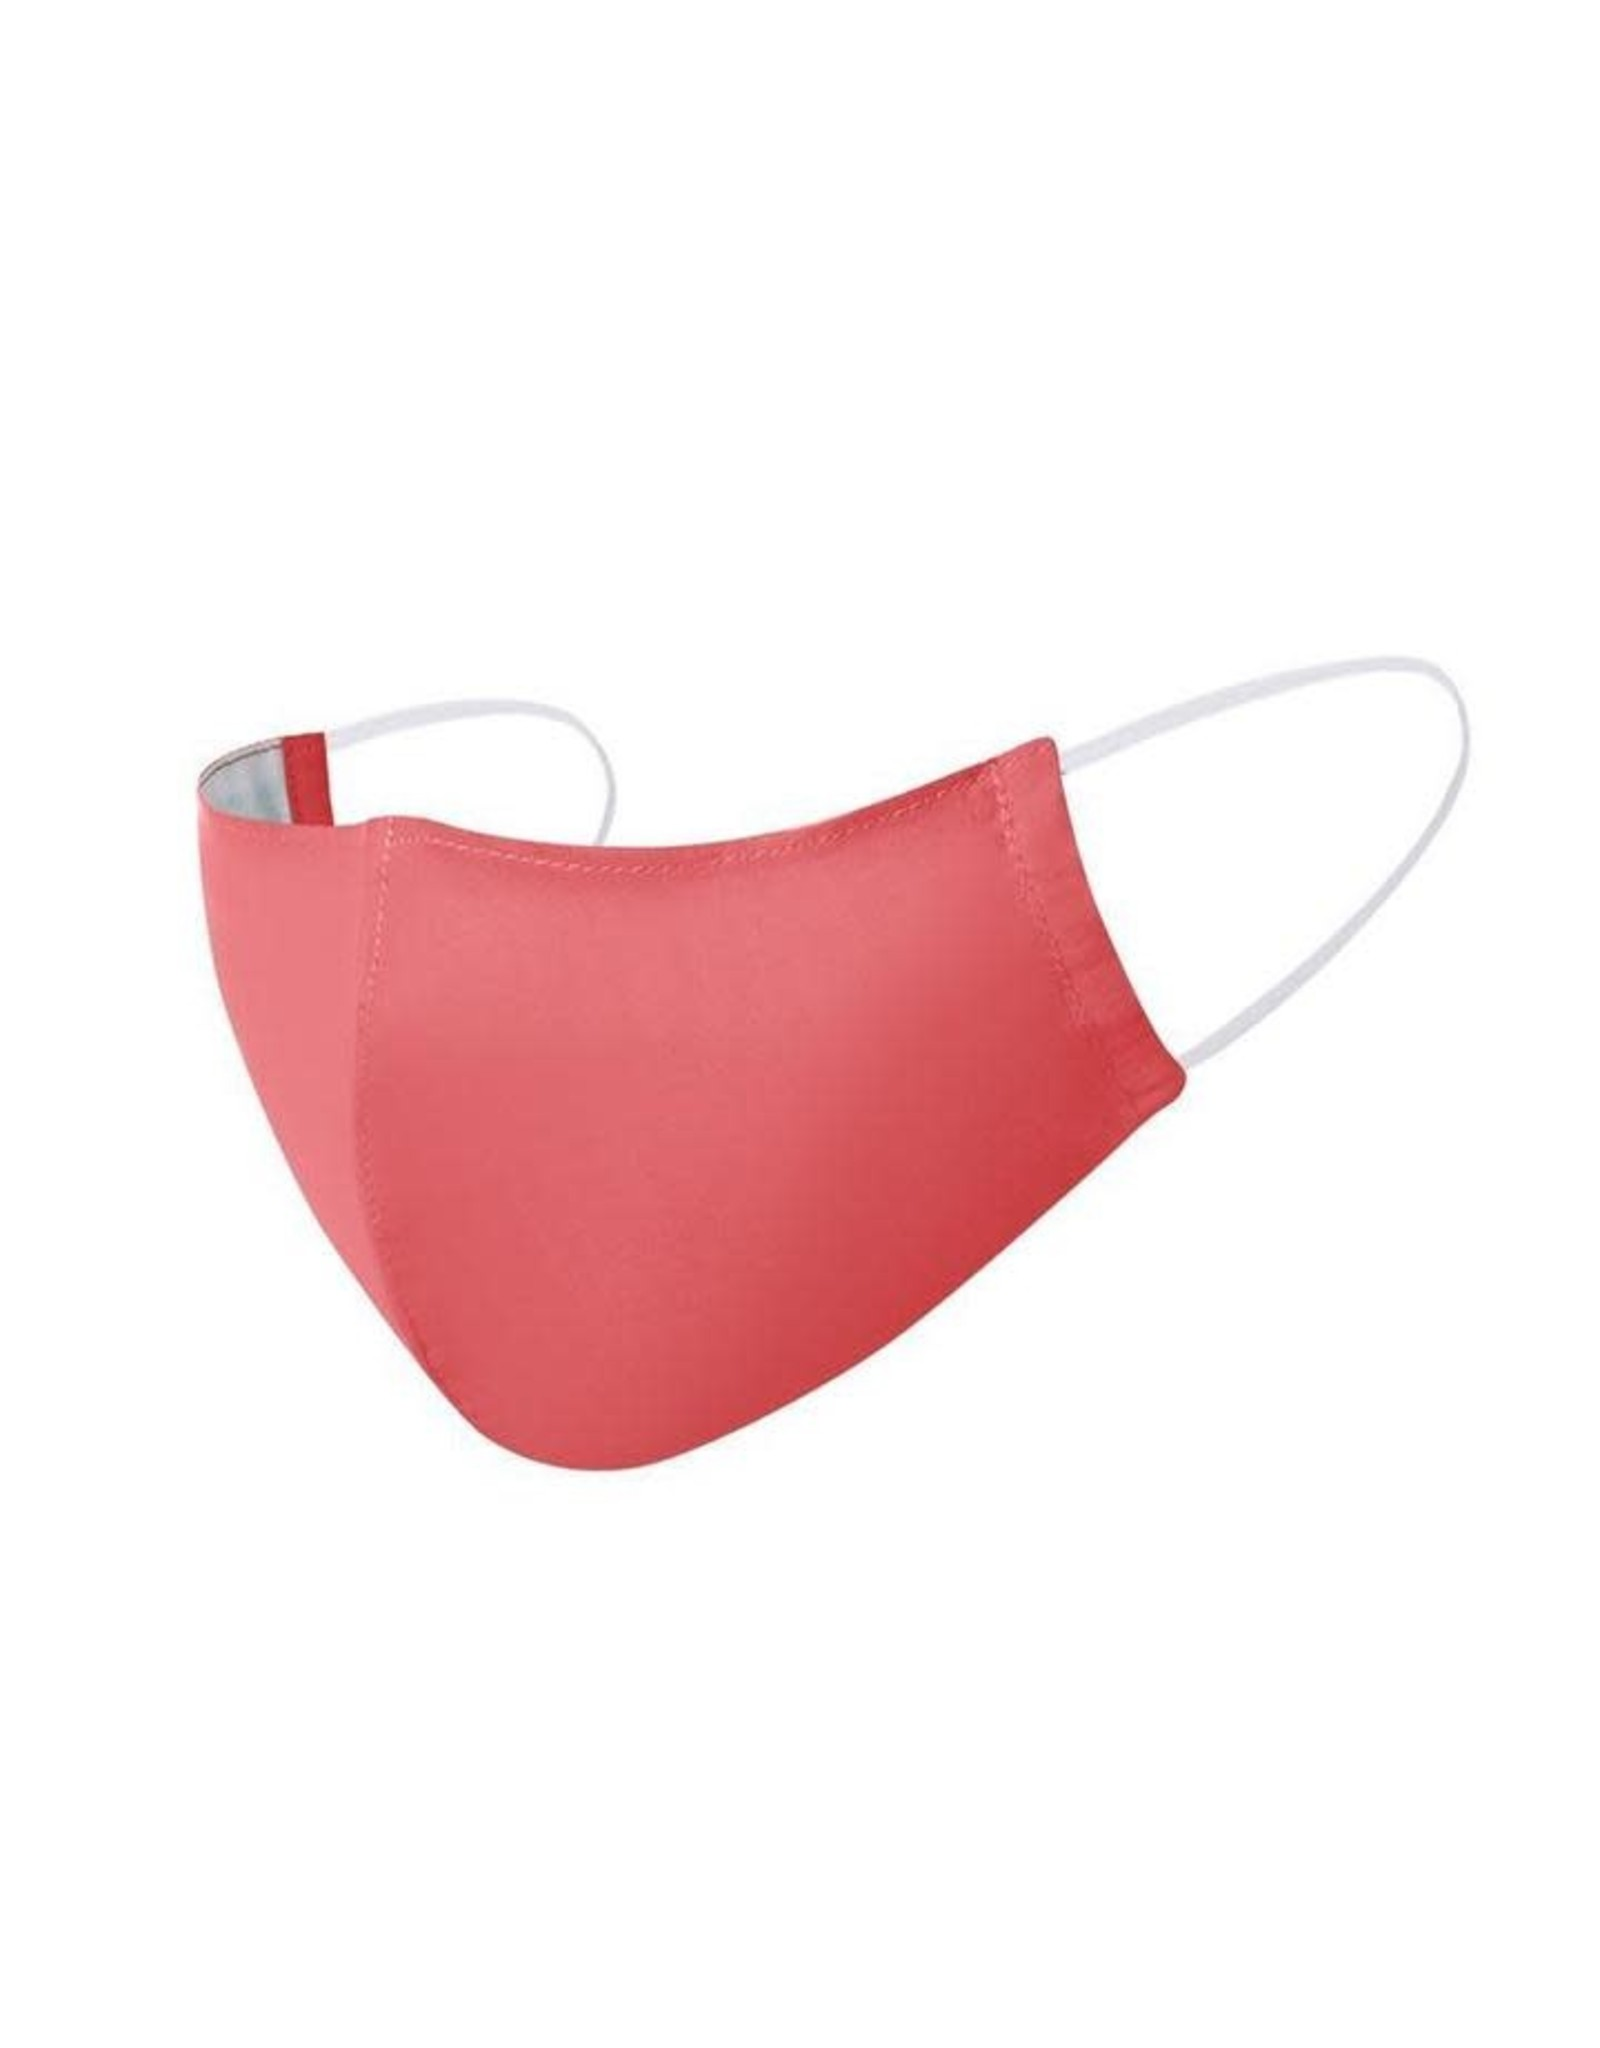 3 layer Cotton Mask, Adult, w/ Pocket CORAL